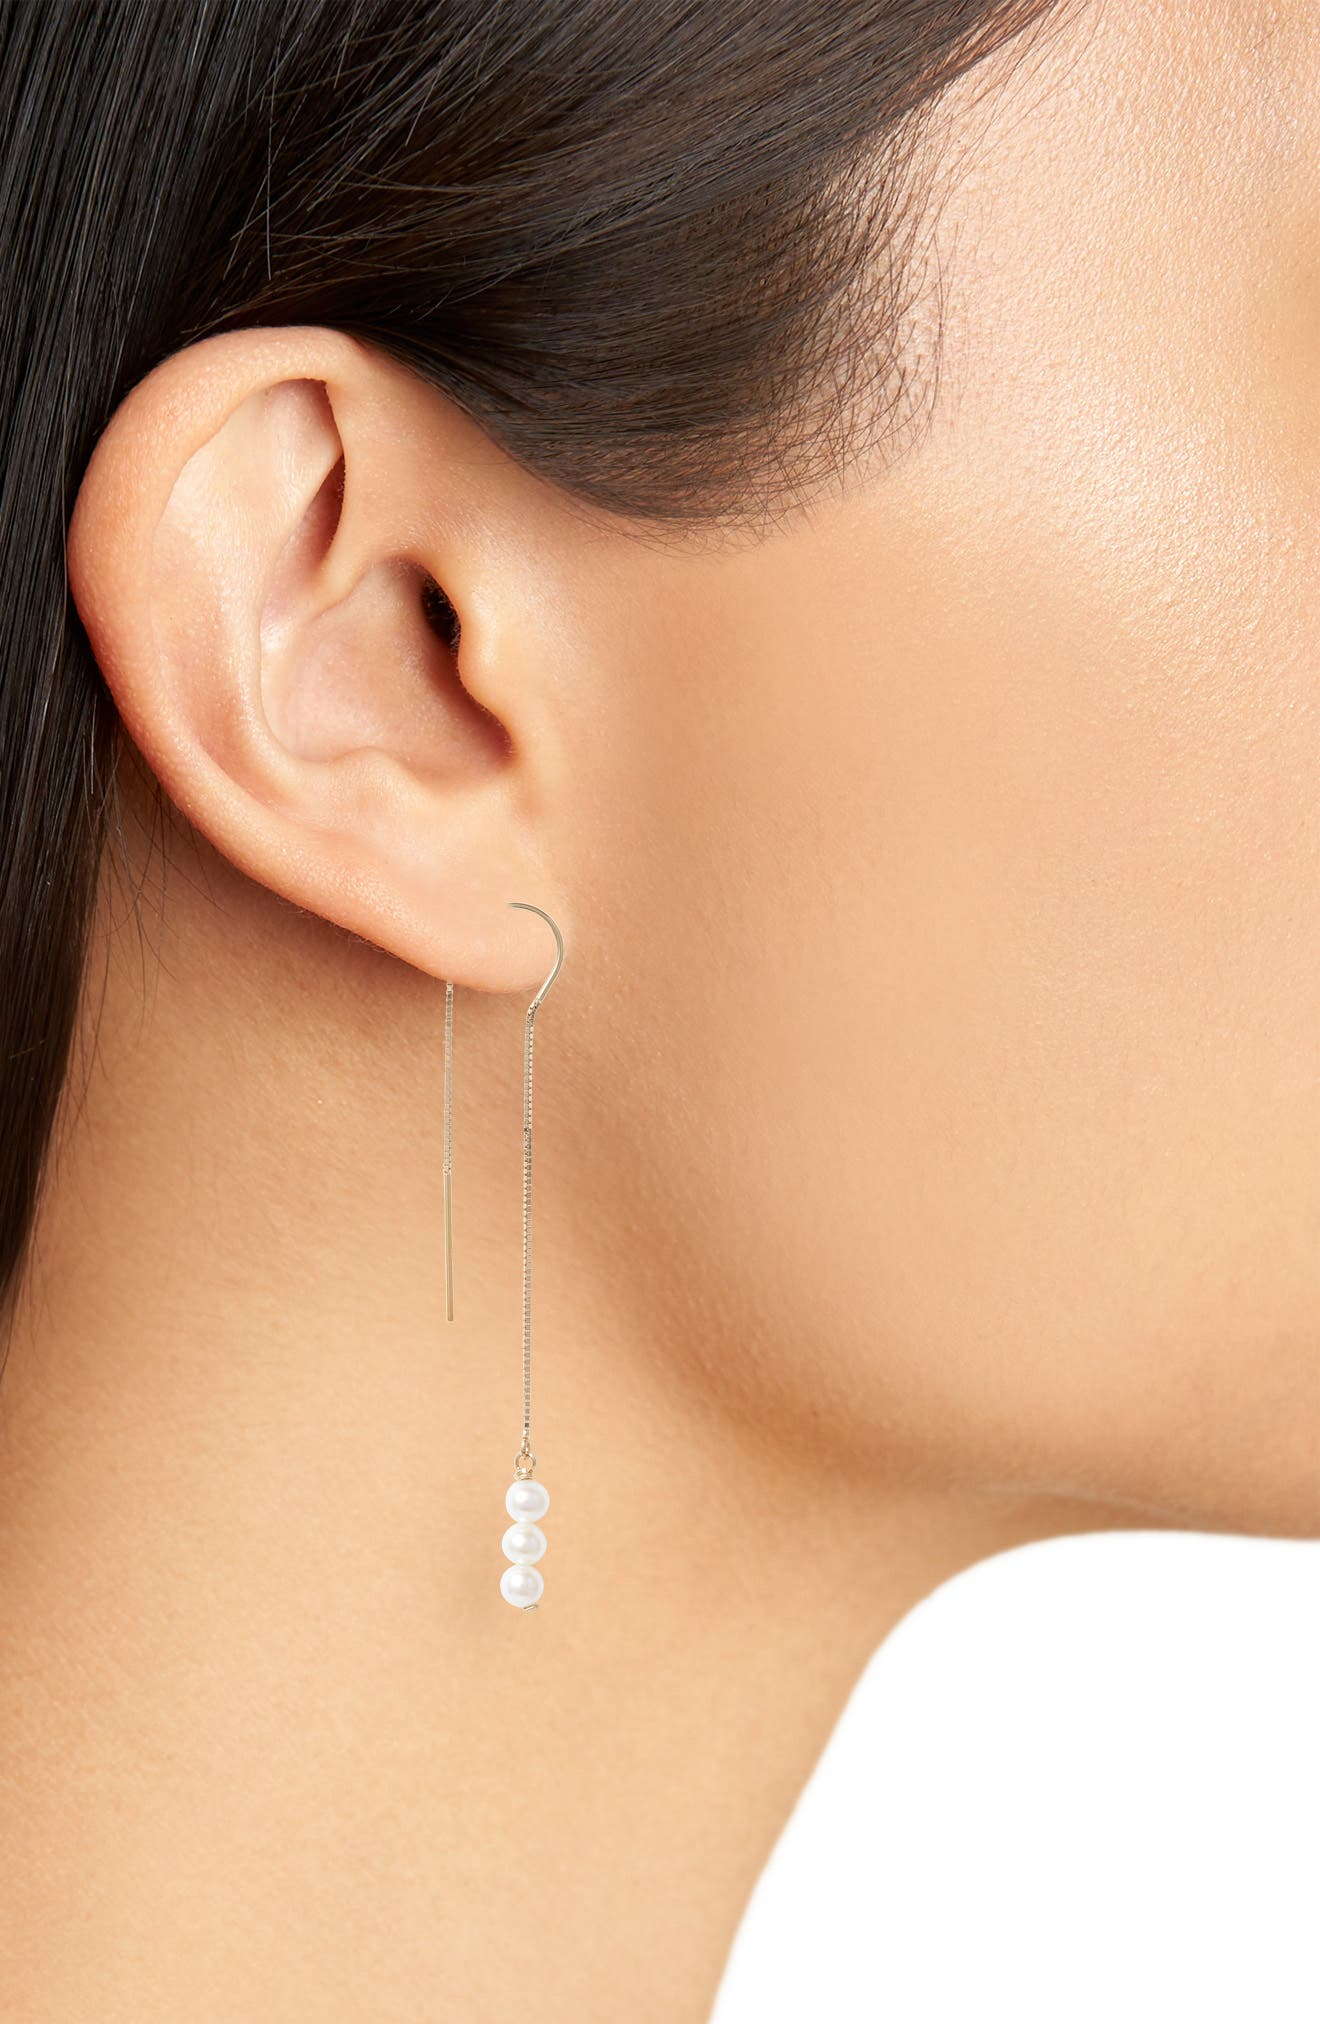 Triple Baby Pearl Threader Earrings,                             Alternate thumbnail 2, color,                             Yellow Gold/ White Pearl